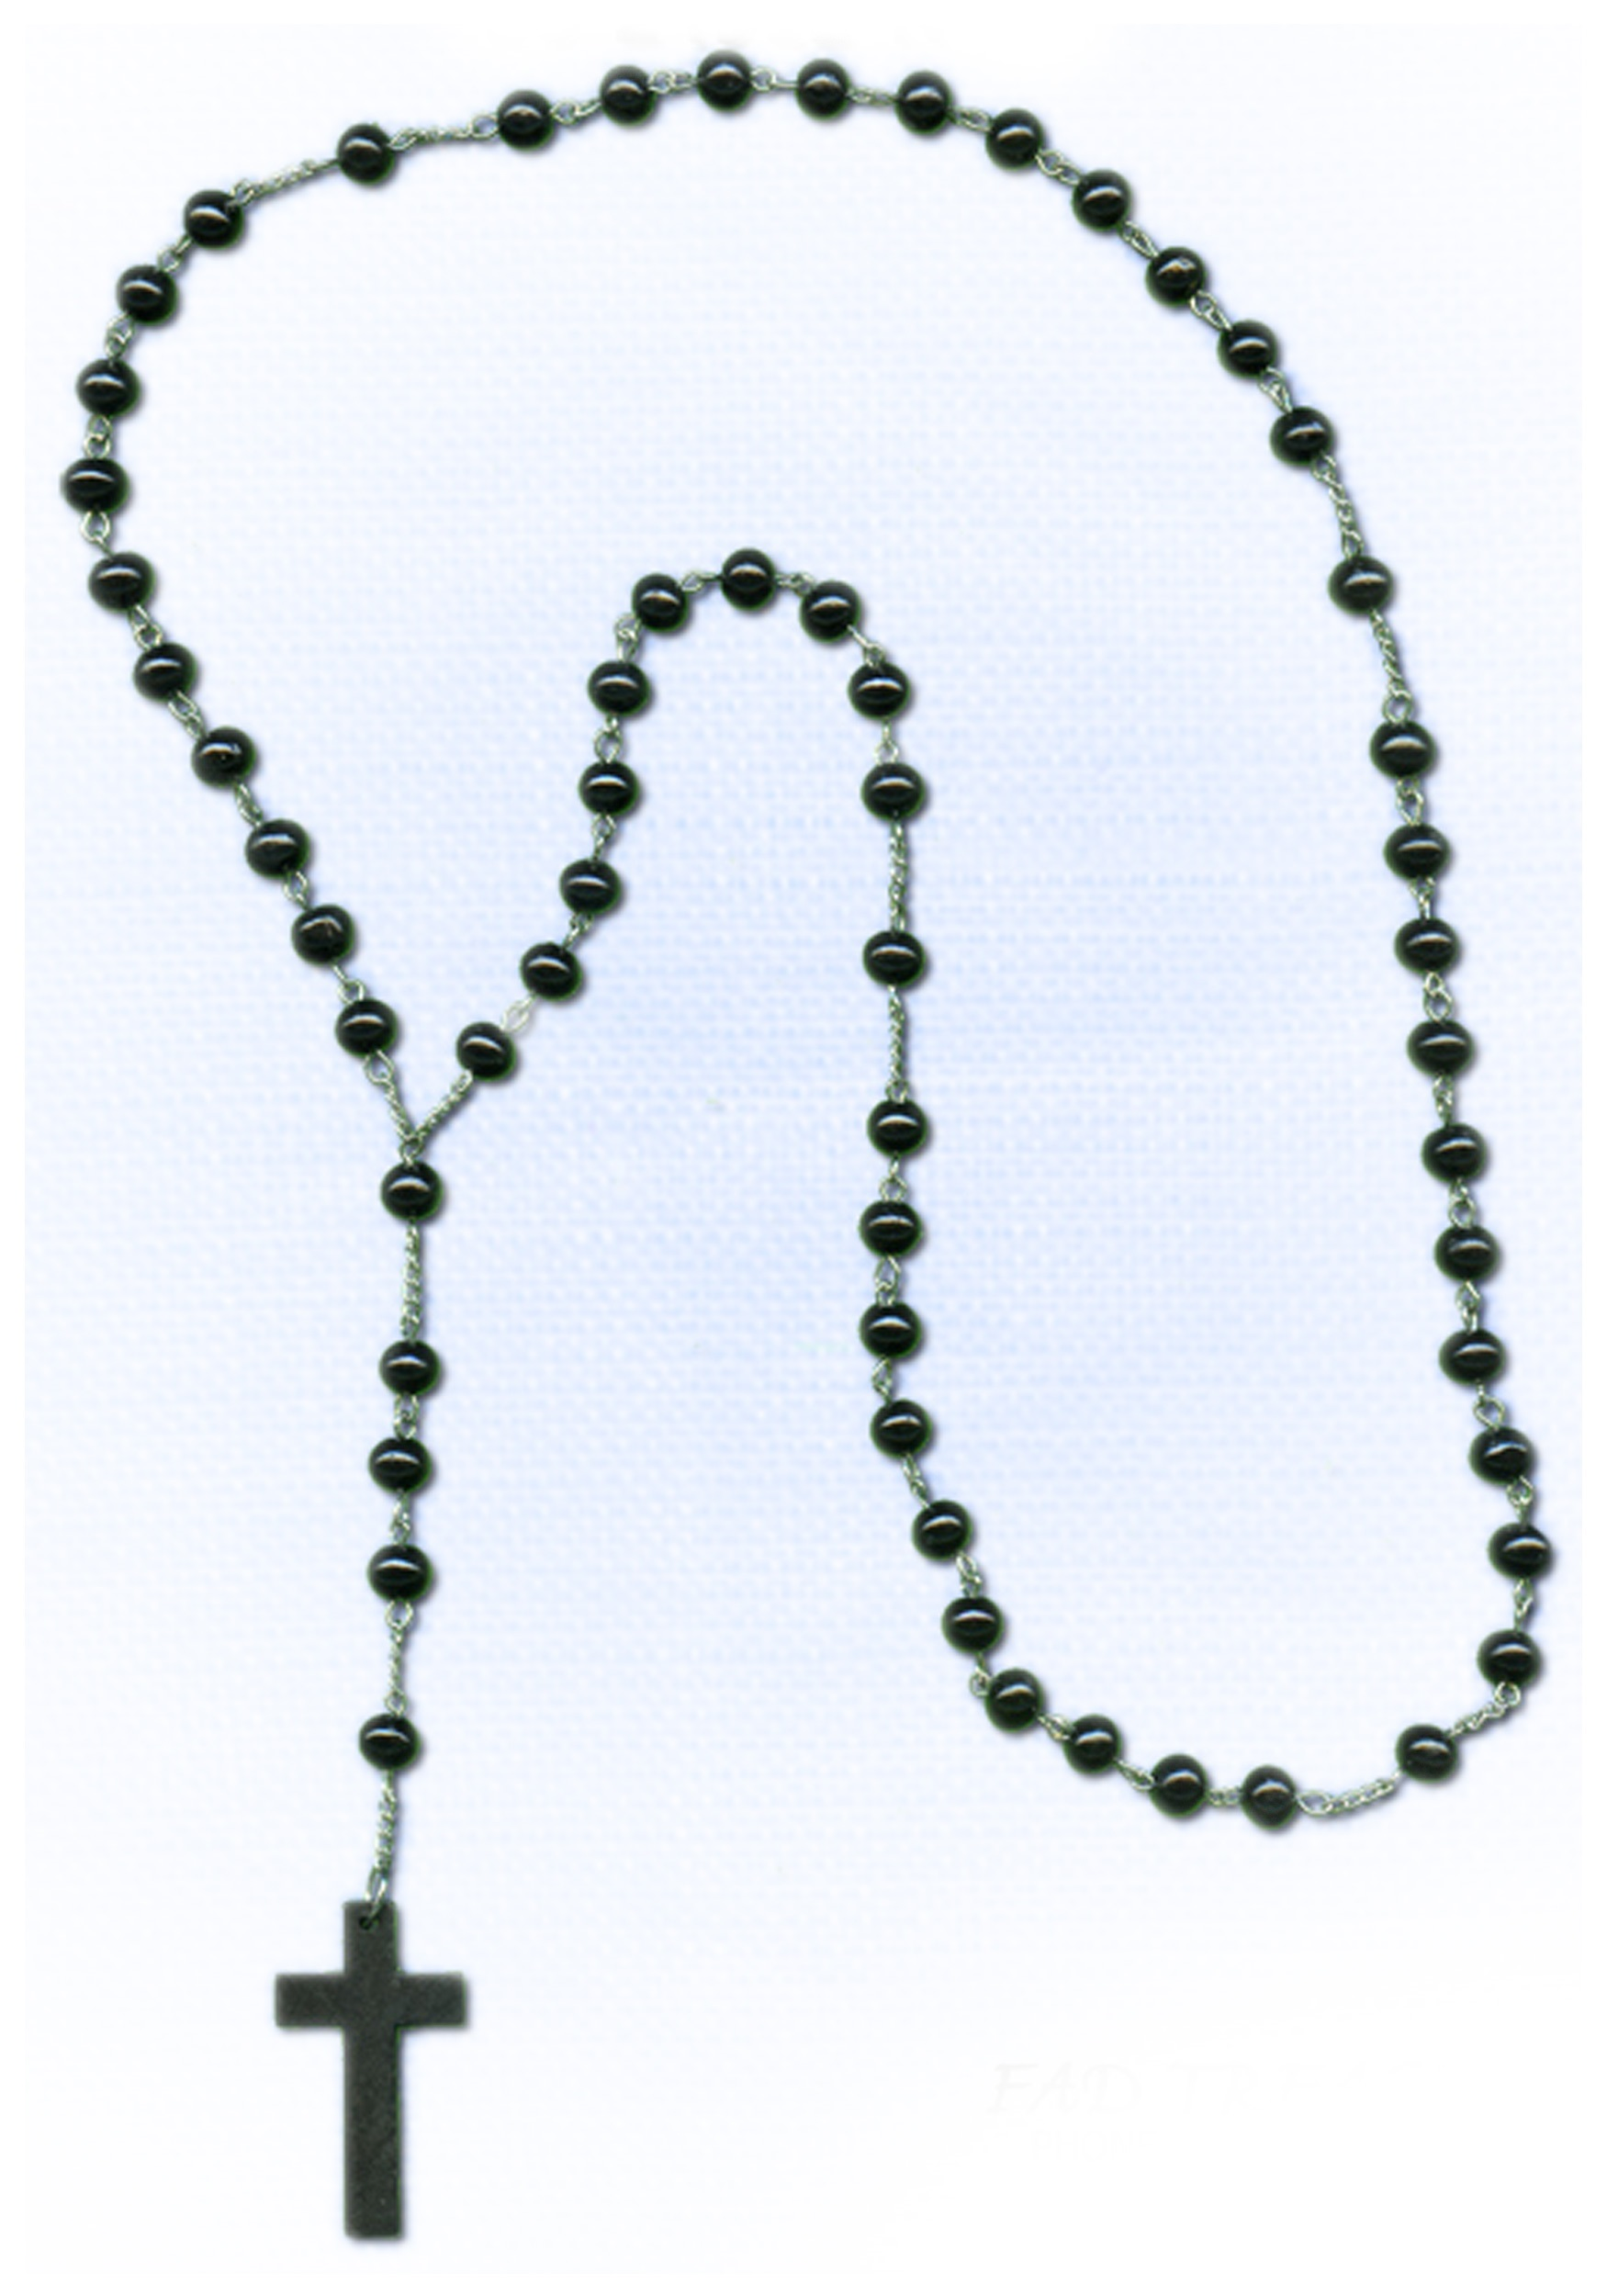 Crucifix clipart rosary bead.